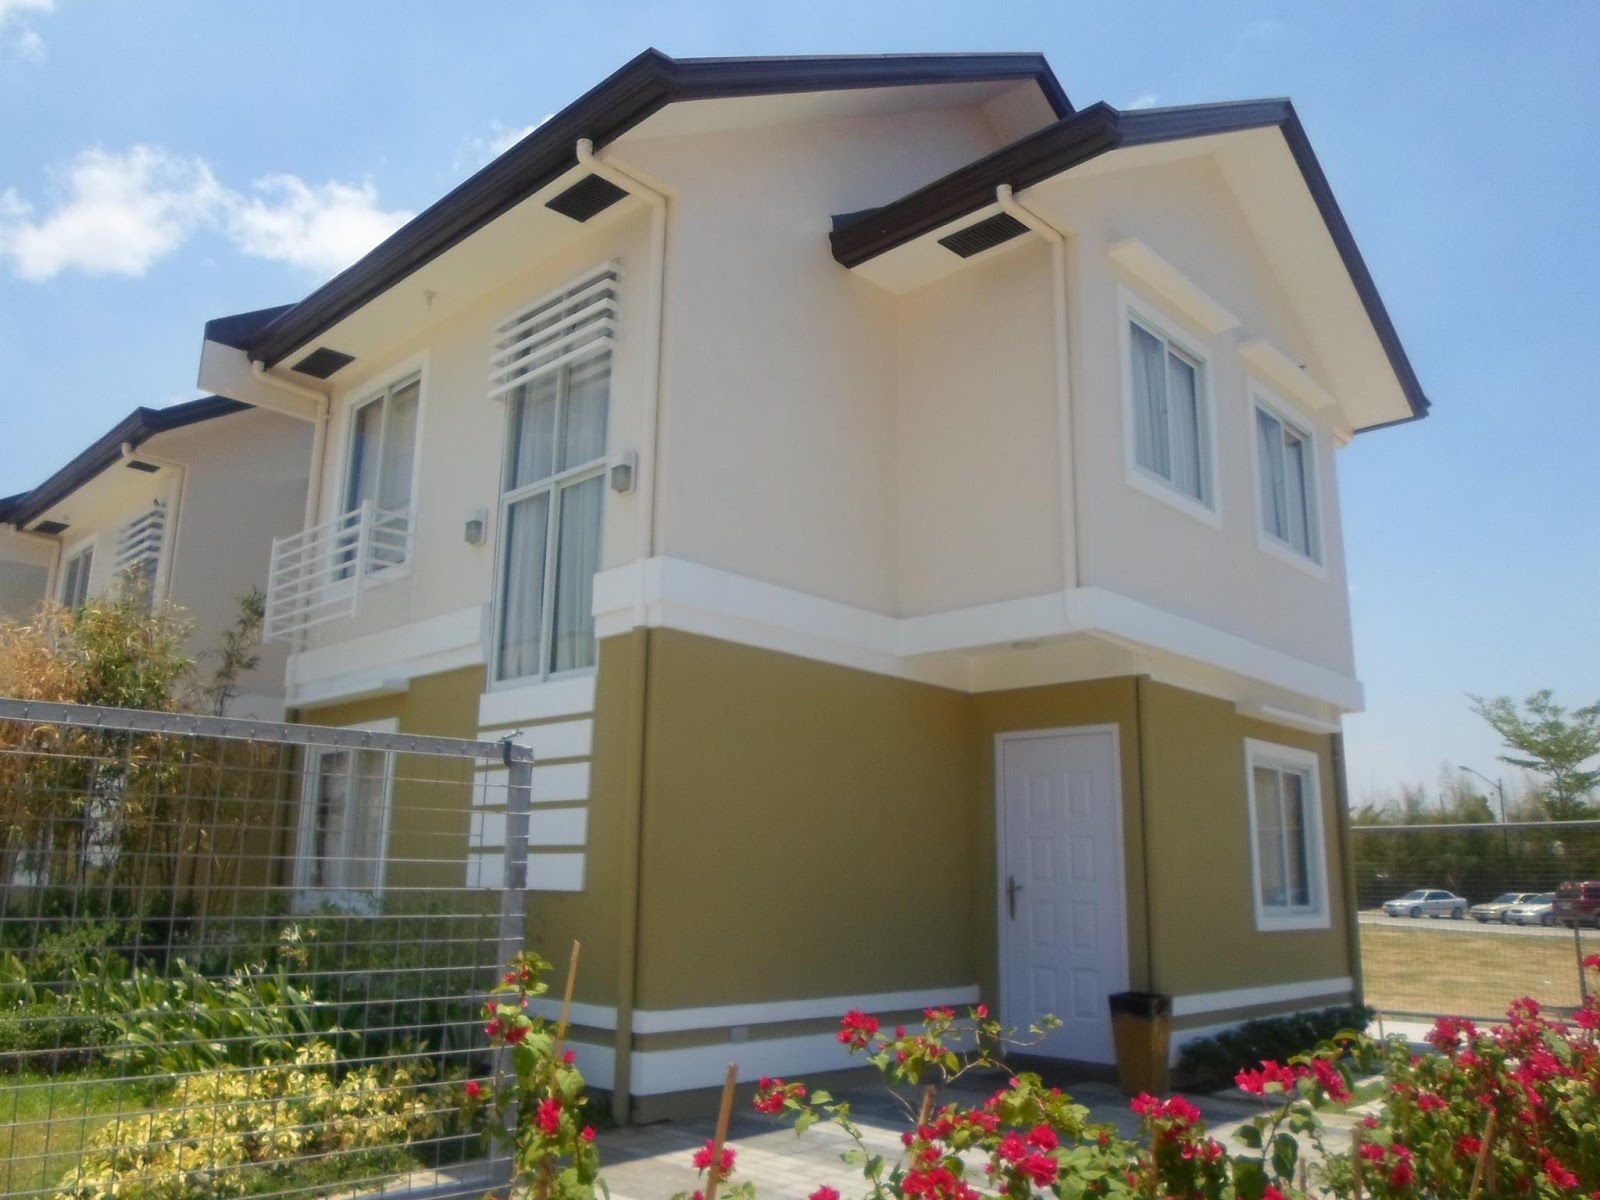 Affordable house design in the philippines lancaster new for Affordable house design